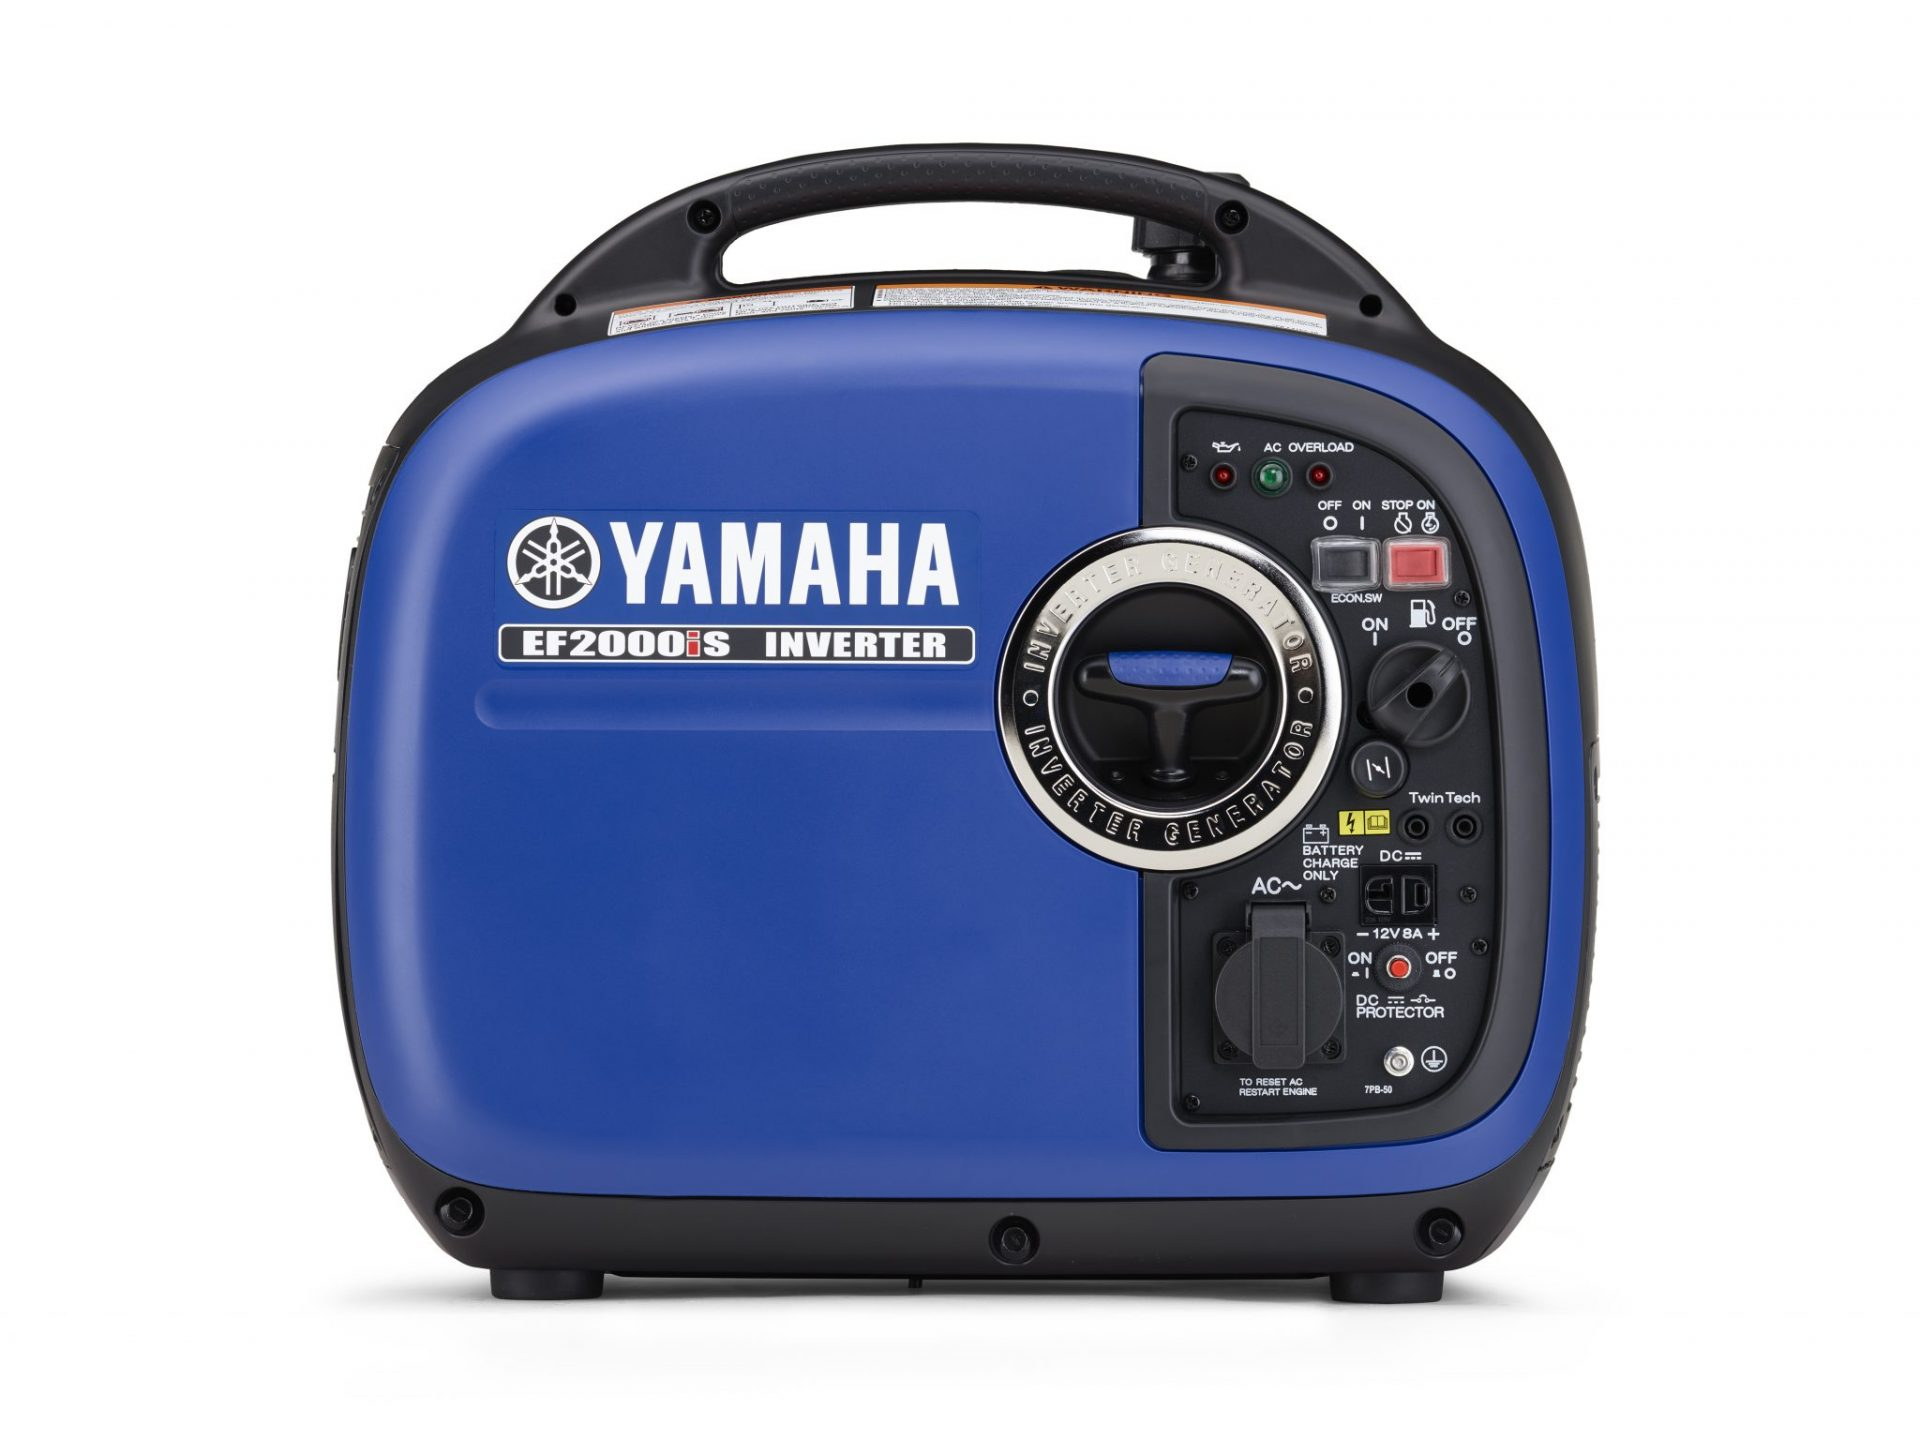 Yamaha EF2000iS portable inverter generator